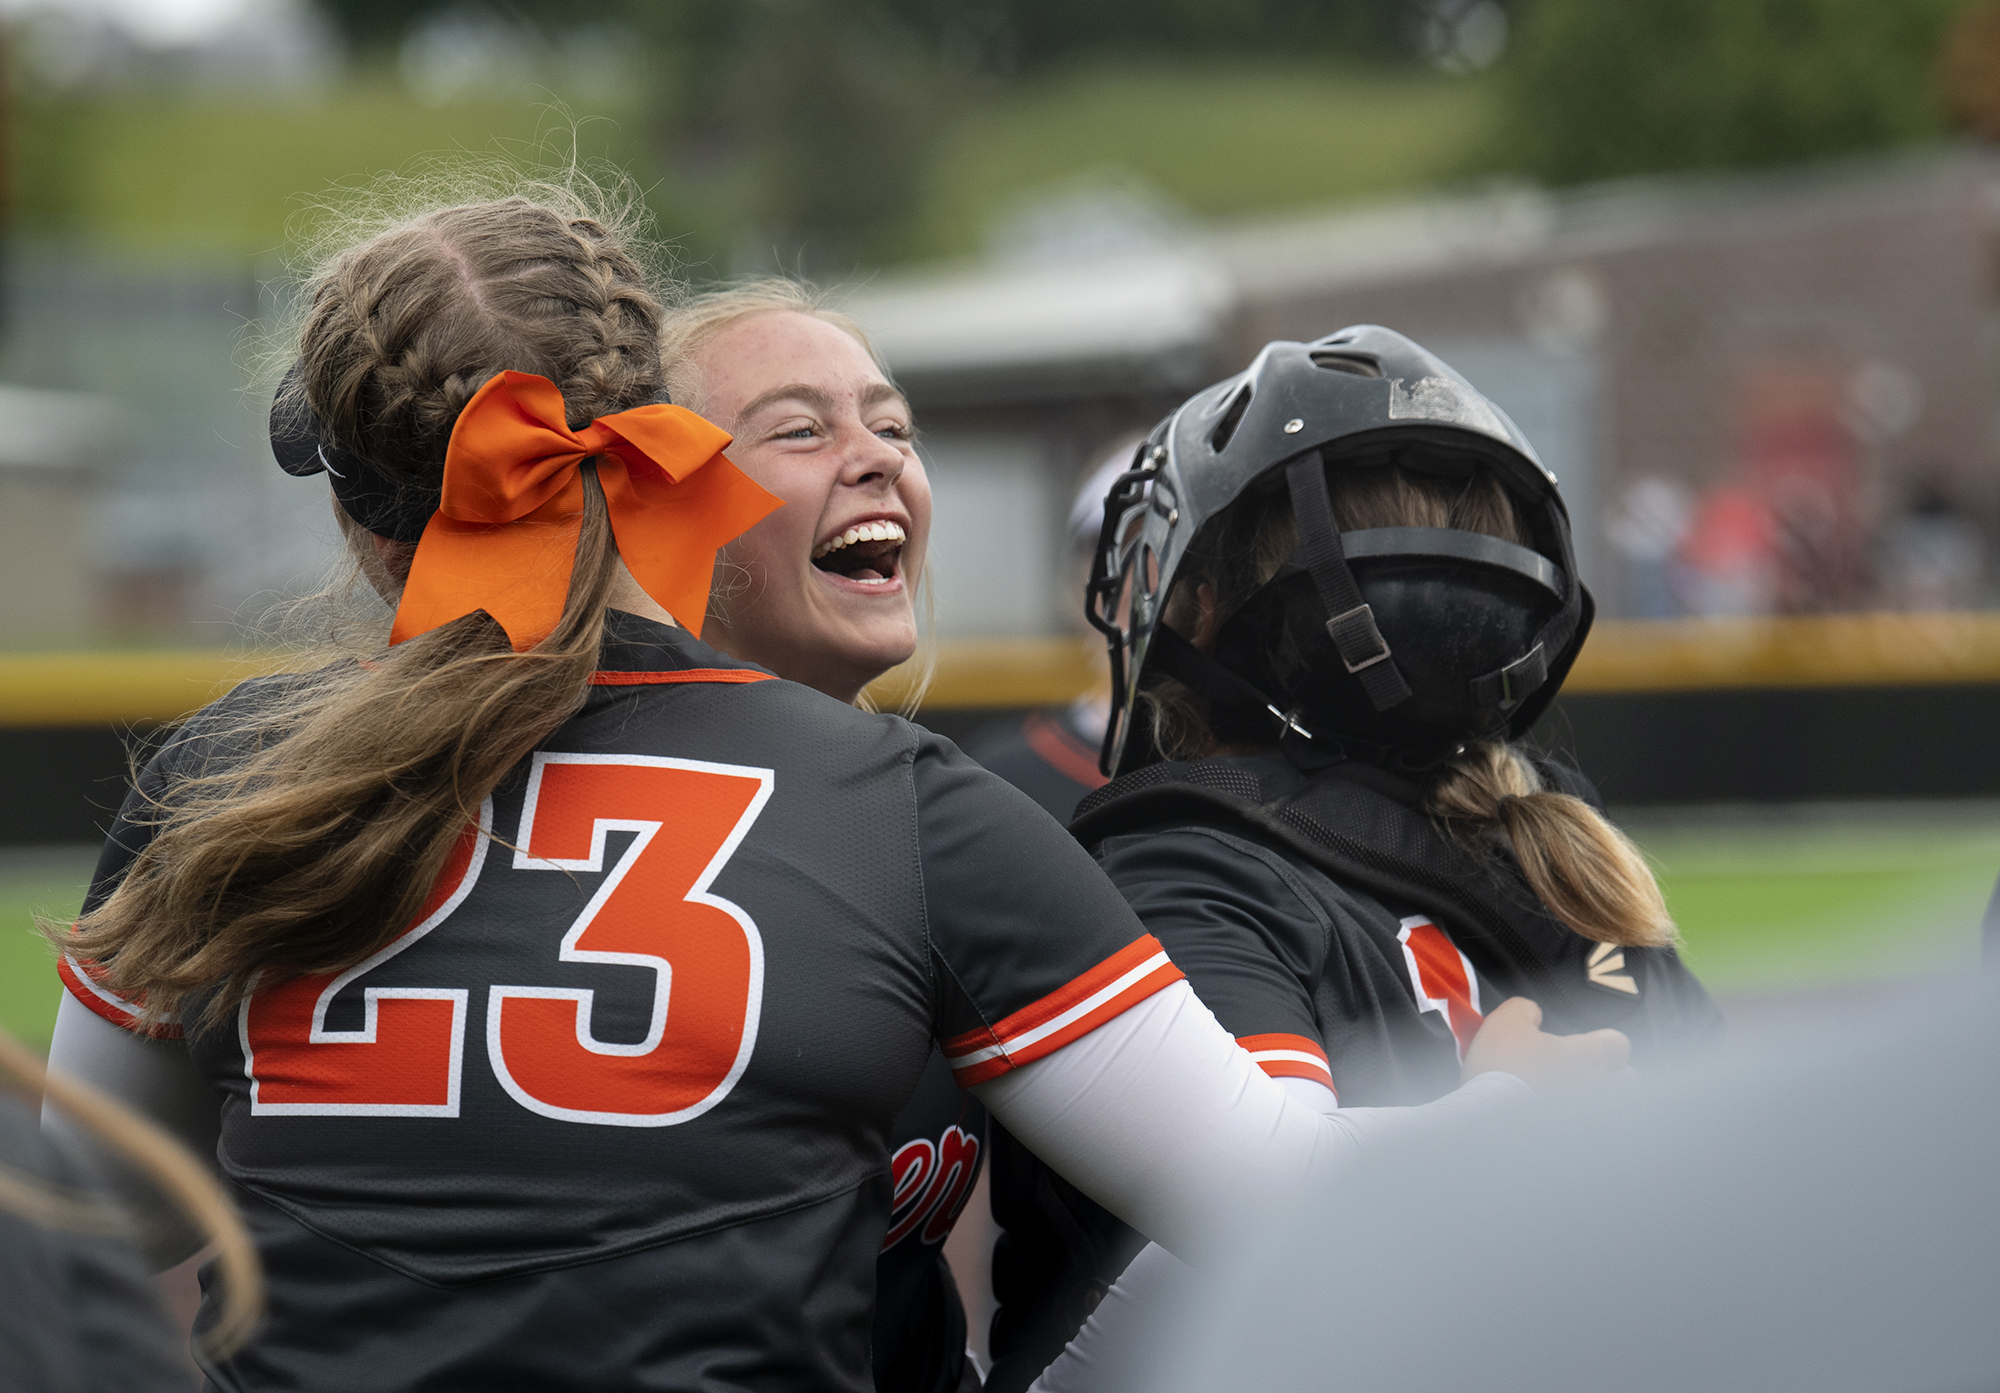 From left, Liv Gruenberg, Ryee Rehbein and Alexis Laizure hug after winning the 4A/3A Greater St. Helens League district championship game on Saturday, June 5, 2021, at Camas High School. Battle Ground defeated Mountain View 8-0 to take the title.